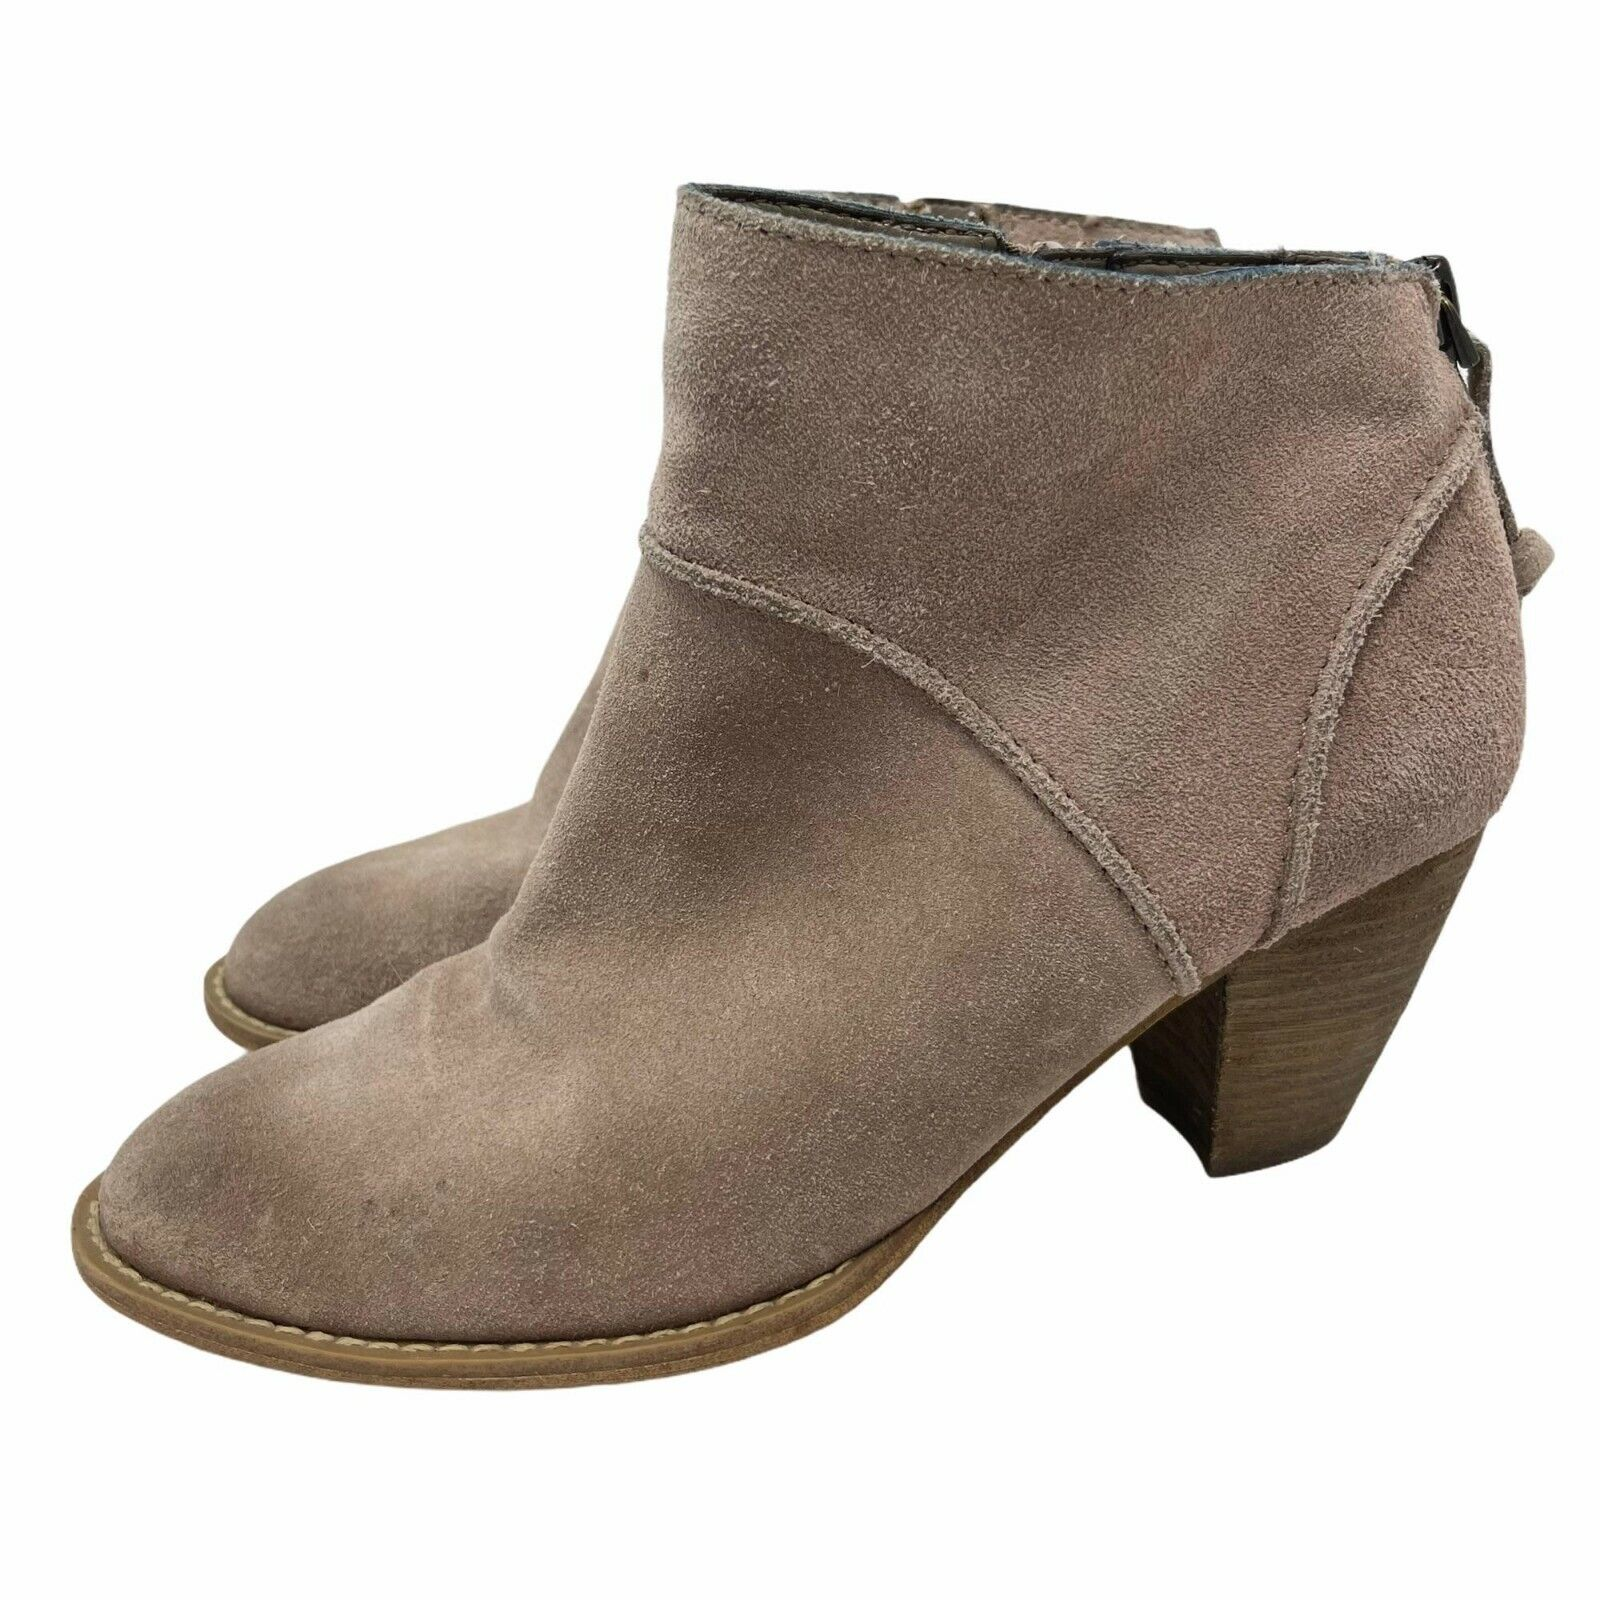 Tesori Suede Leather Ankle Booties Taupe Tan Gray Women's 7.5 Stacked Heel Zip